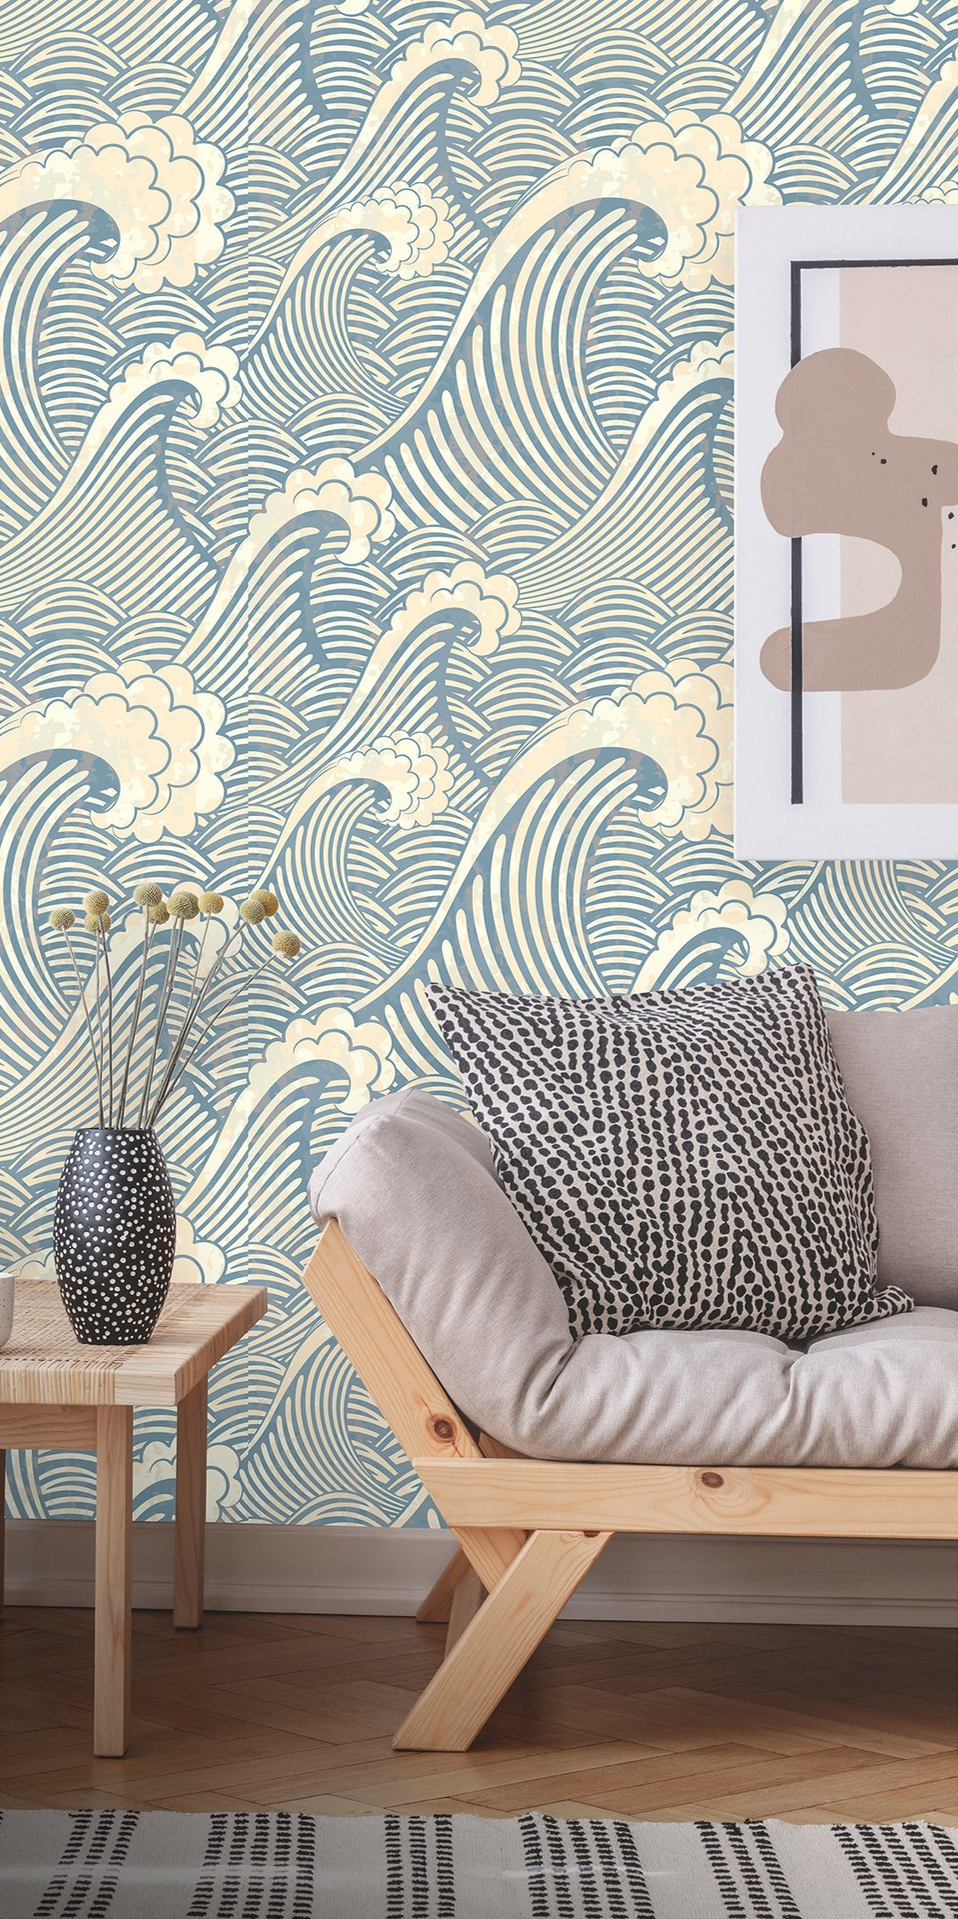 Removable Wallpaper Peel and Stick Great Wave Pattern